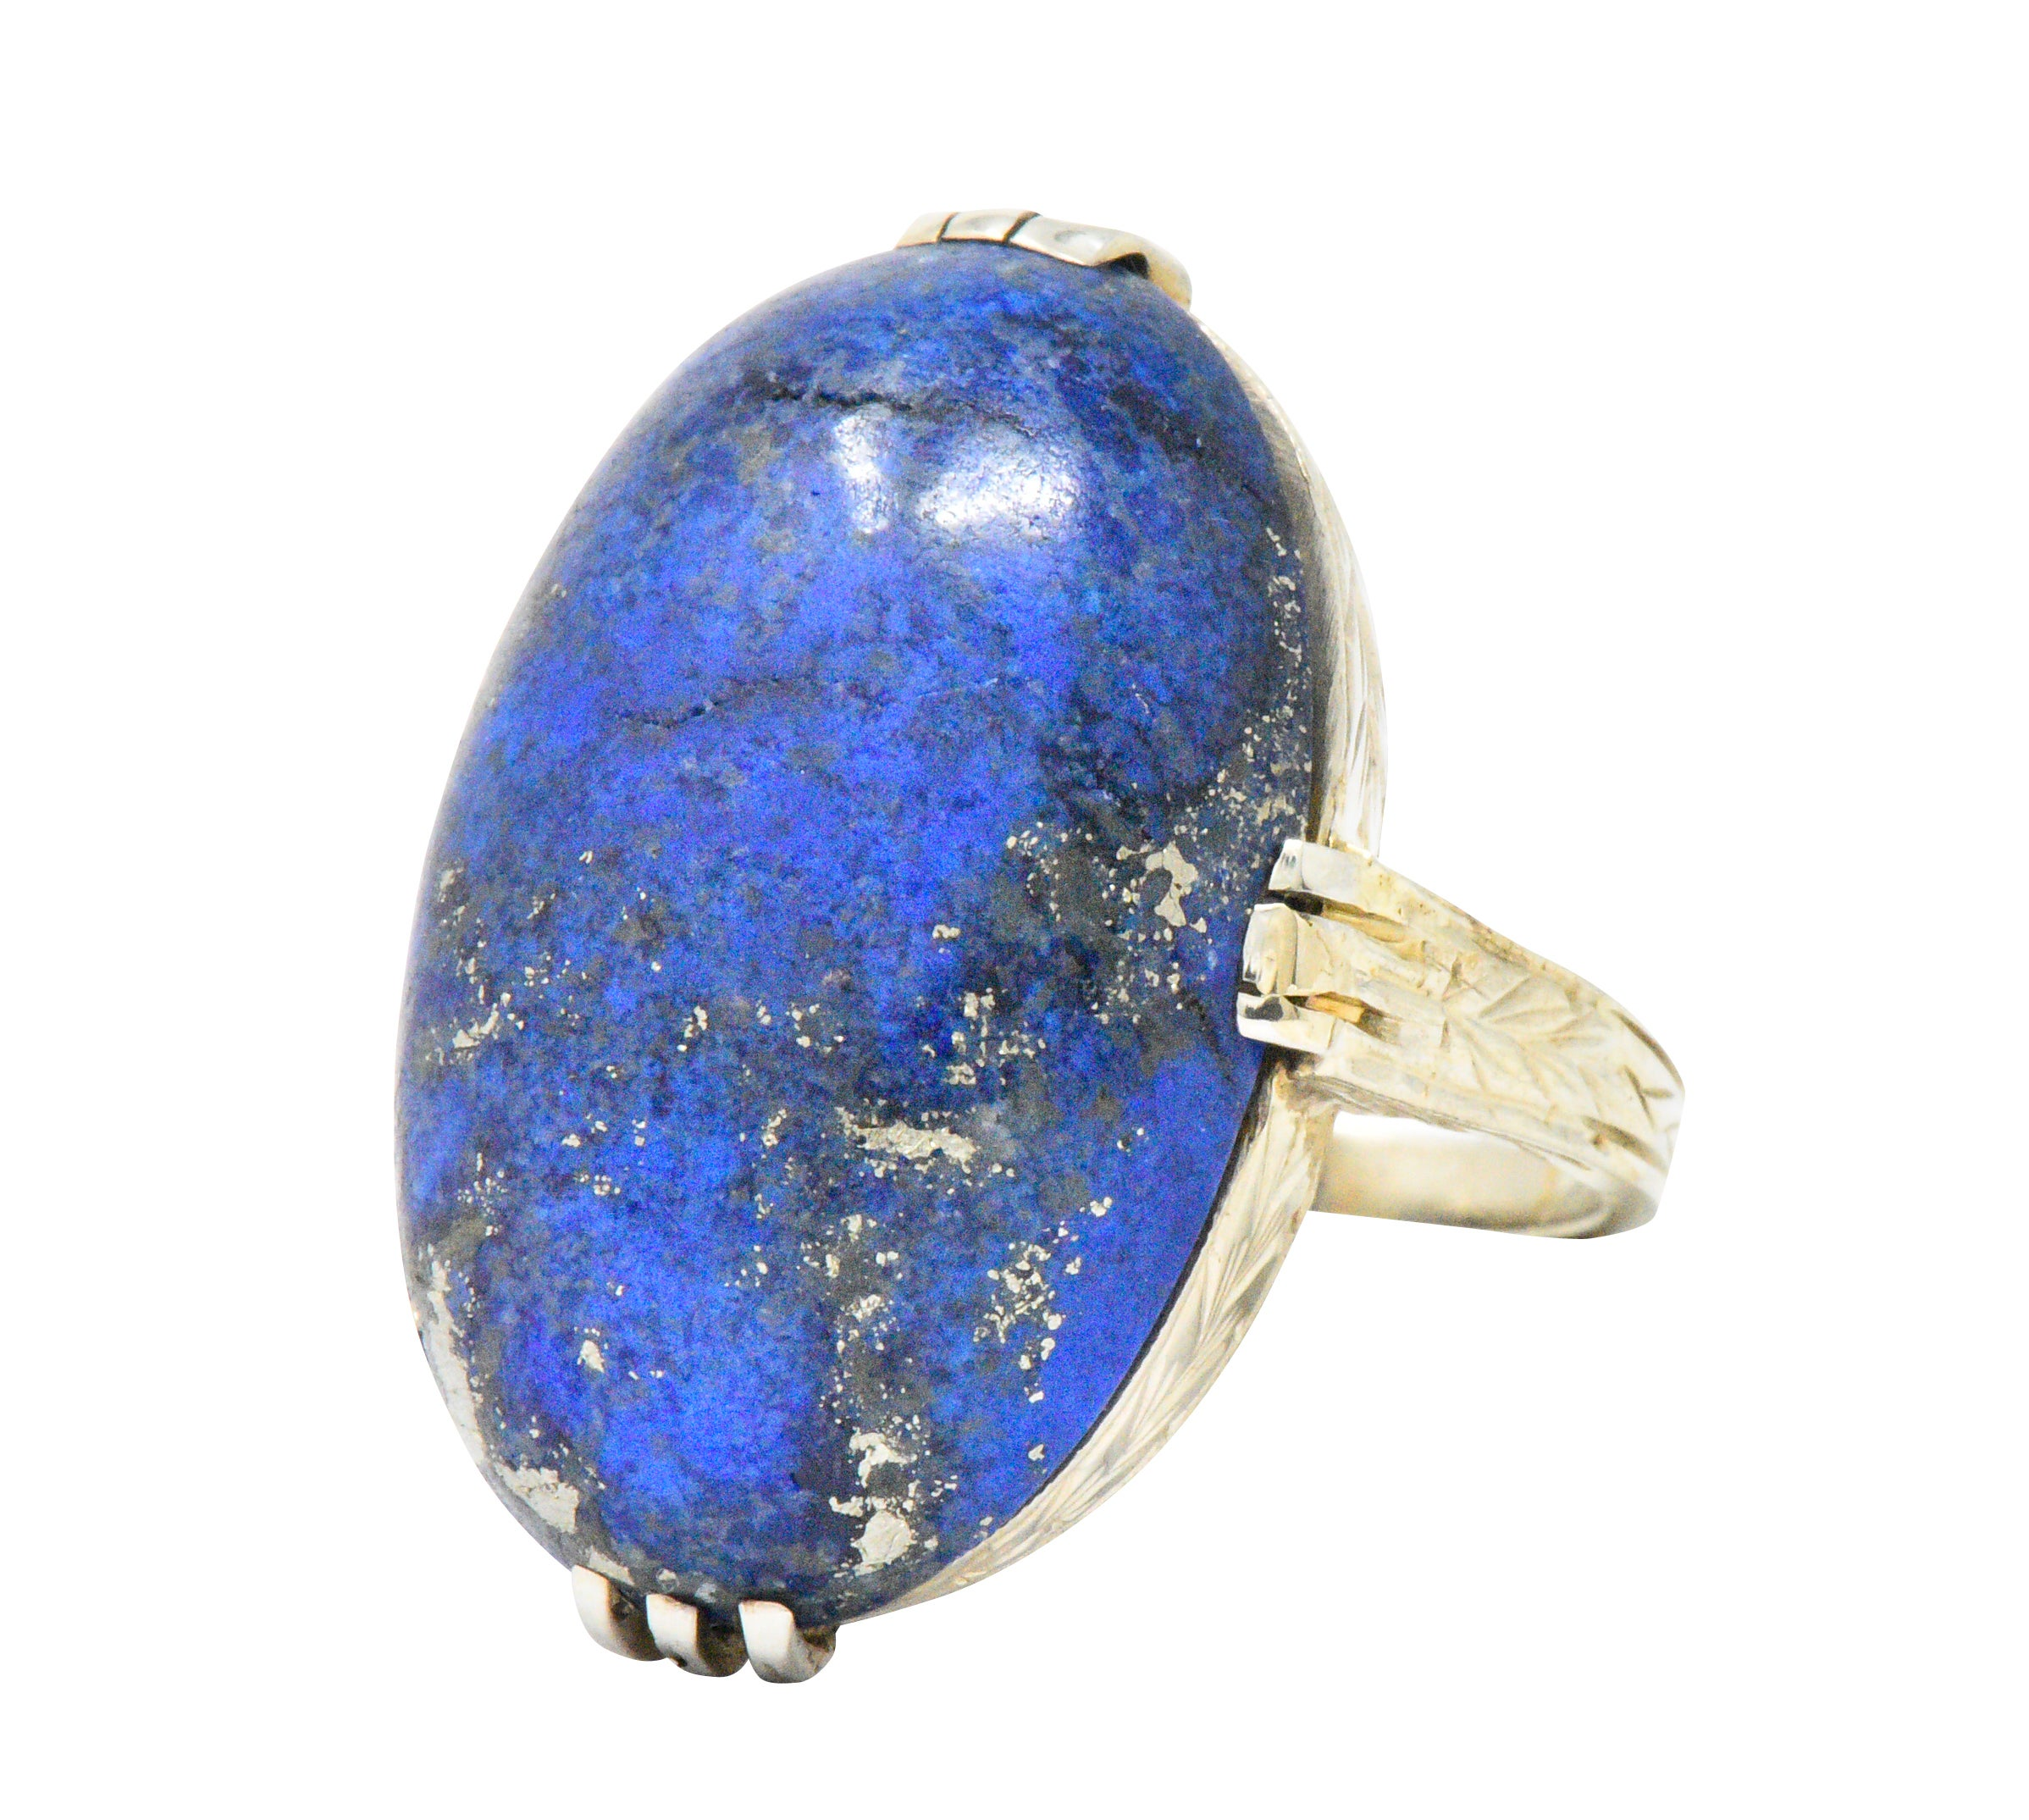 Art Nouveau Lapis Lazuli and 14 Karat White Gold Cocktail Ring